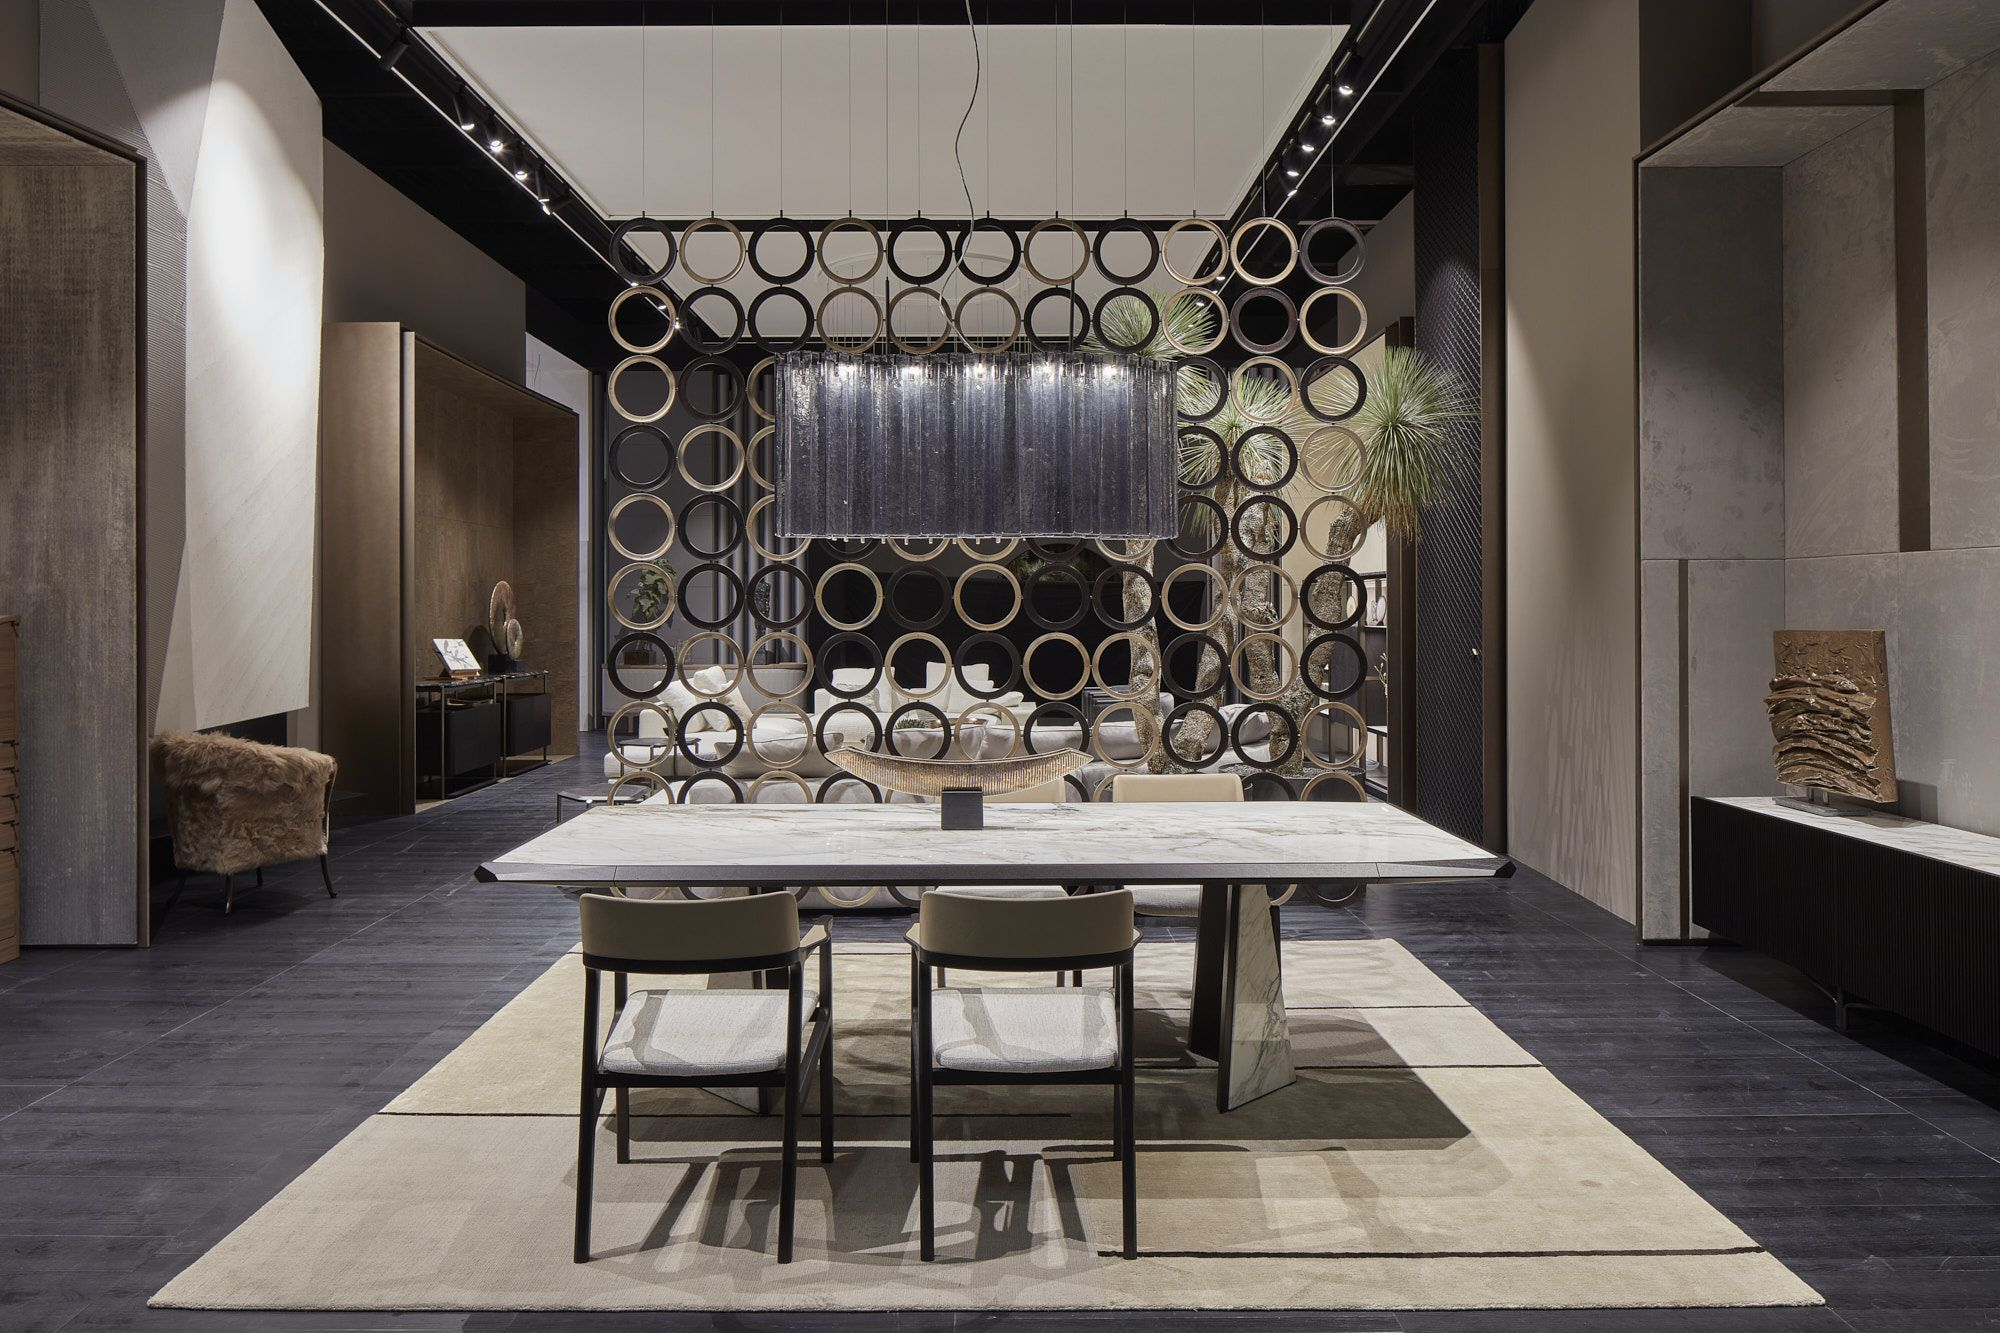 Giorgetti brings excellence in its design at imm Cologne, to unveil the latest news from 2019 Collection. In the picture: Amadeus table and Alexa Chairs #giorgetti #luxuryhome #luxuryfurniture #livingdesign #furniture #furnituredesign #luxuryfurniture